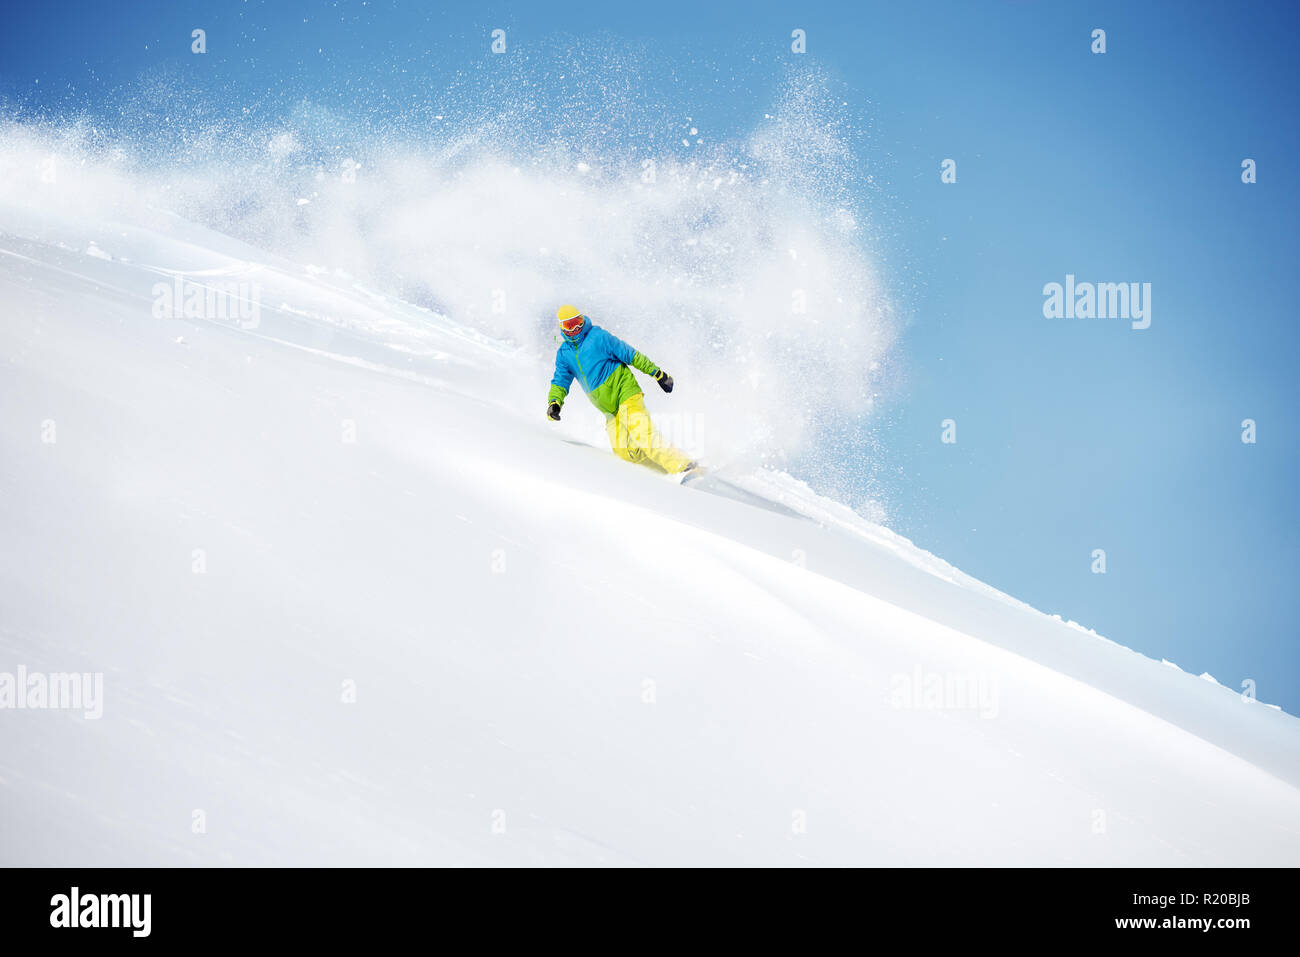 Fast snowboarder at offpiste slope with powder snow tail. Freeride ski concept - Stock Image